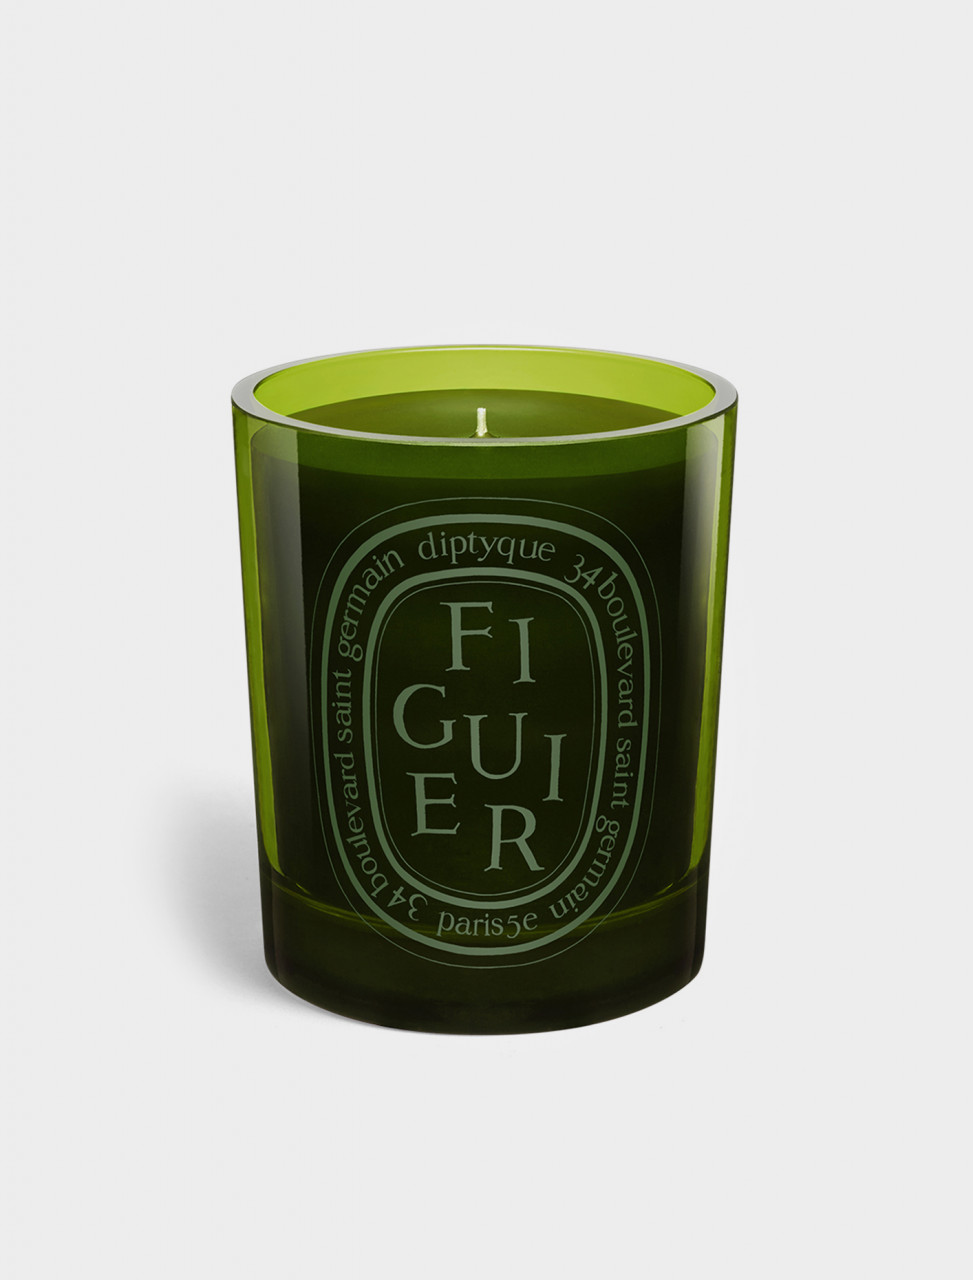 337-FIV2 DIPTYQUE FIGUER GREEN CANDLE